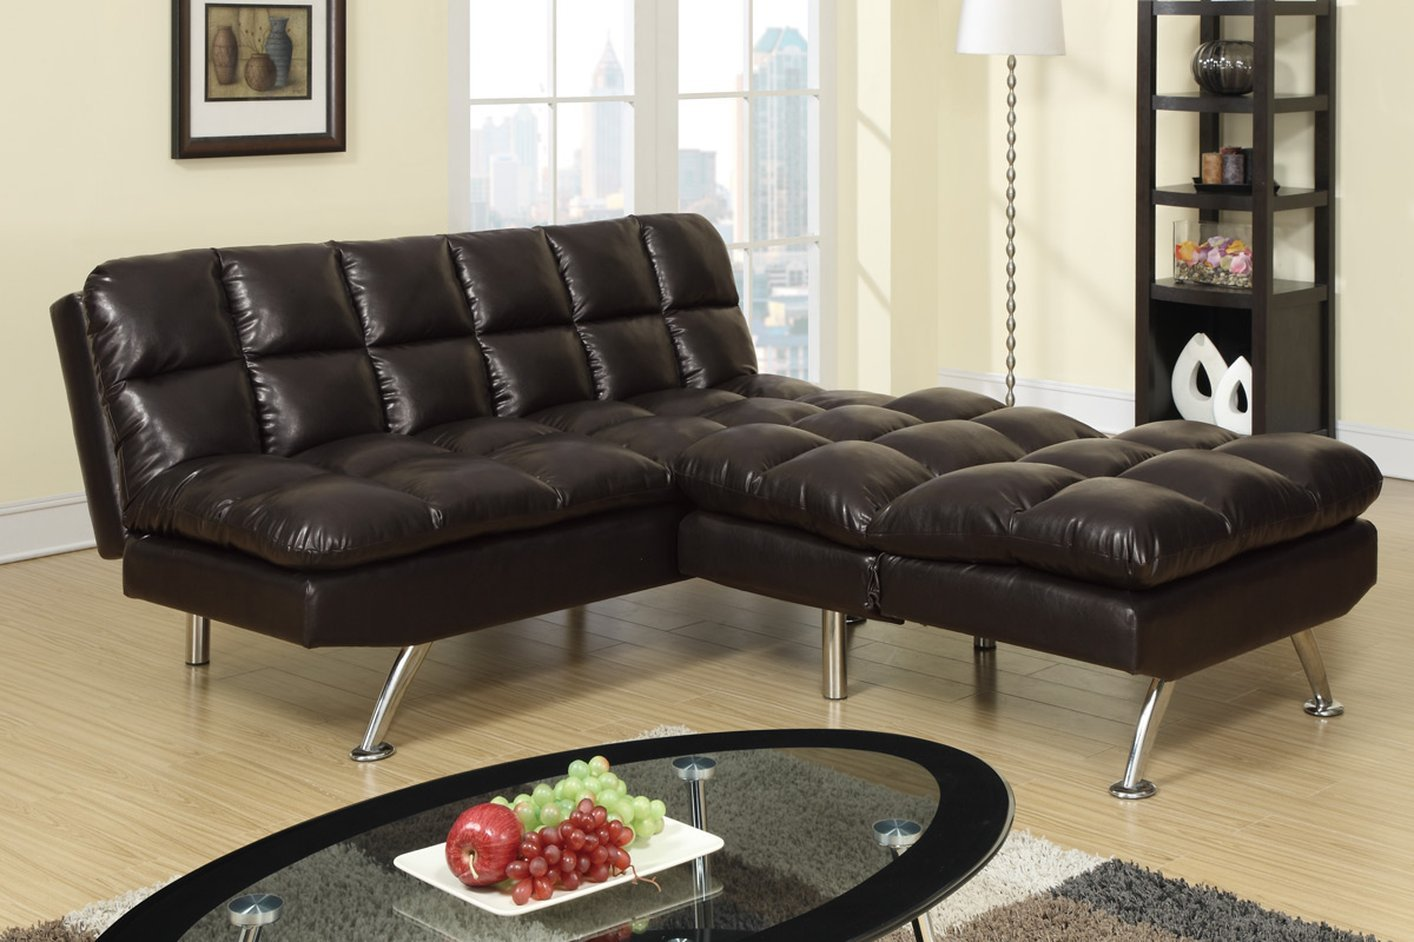 brown leather twin size sofa bed steal a sofa furniture outlet los angeles ca. Black Bedroom Furniture Sets. Home Design Ideas